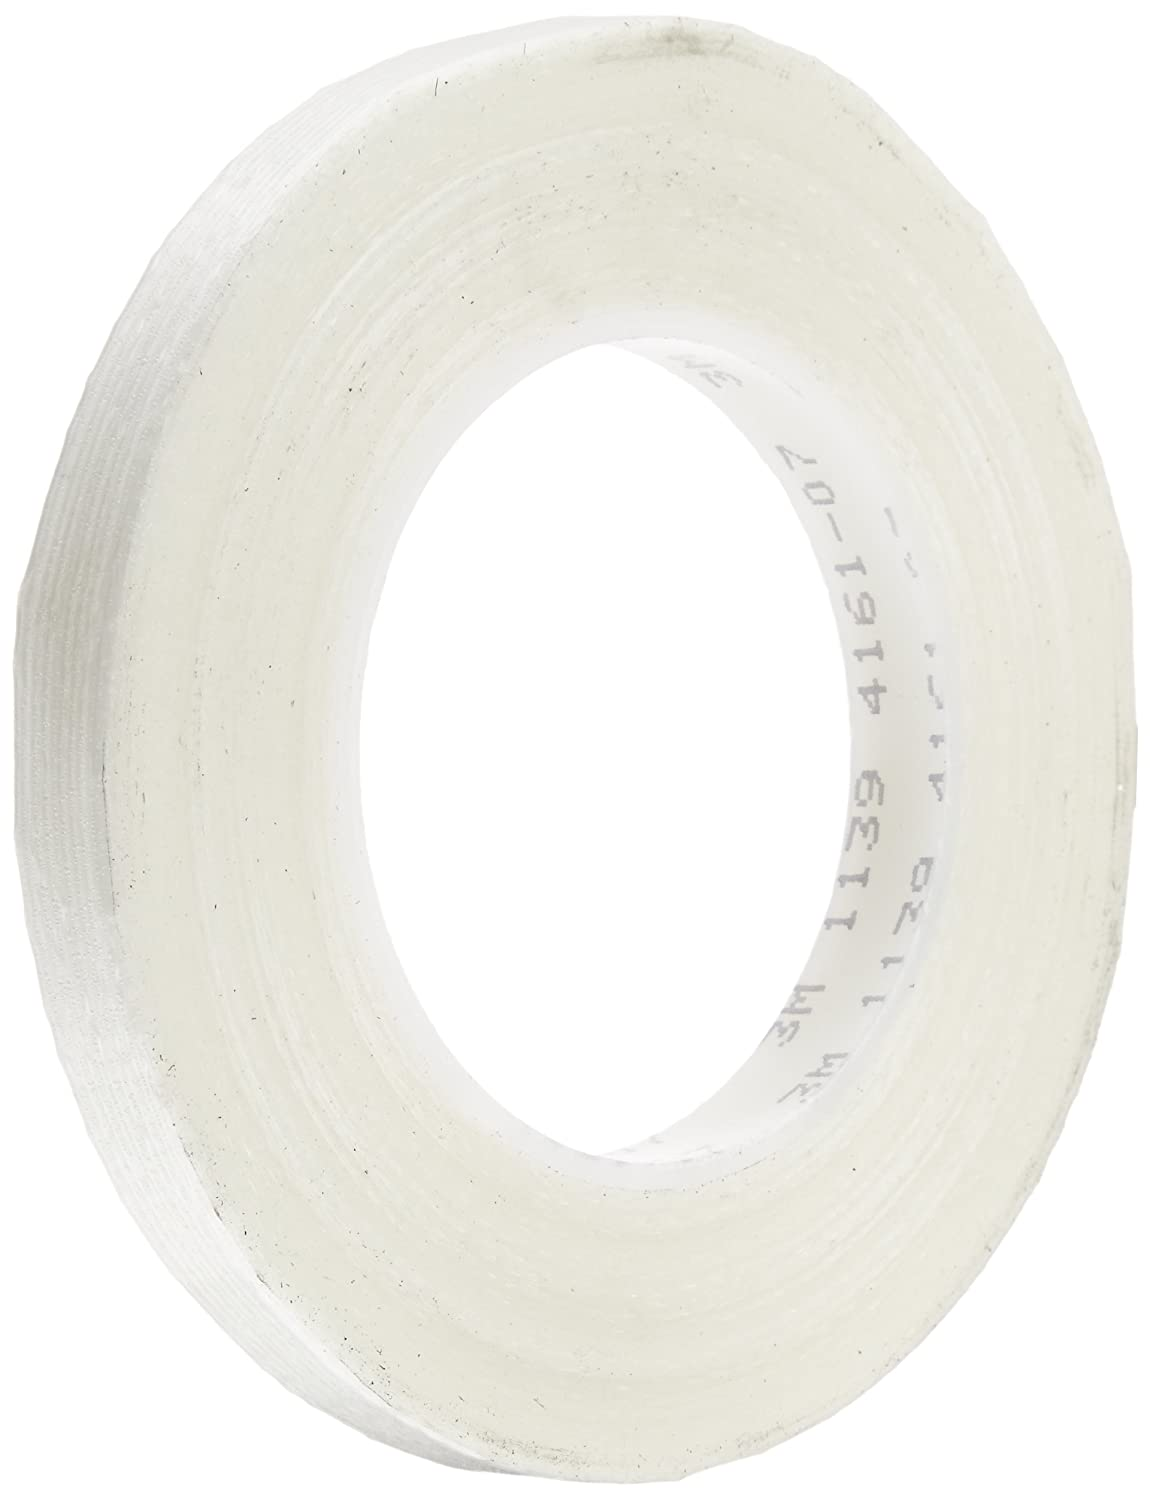 TapeCase 1139 0.5' x 60yd Clear Polyester Film/Glass Filament 3M Reinforced Electrical Tape 1139, 311 degrees F Performance Temperature, 0.0065' Thickness, 60 yd Length, 0.5' Width 0.0065 Thickness 0.5 Width 3M 1139 0.5 x 60yd